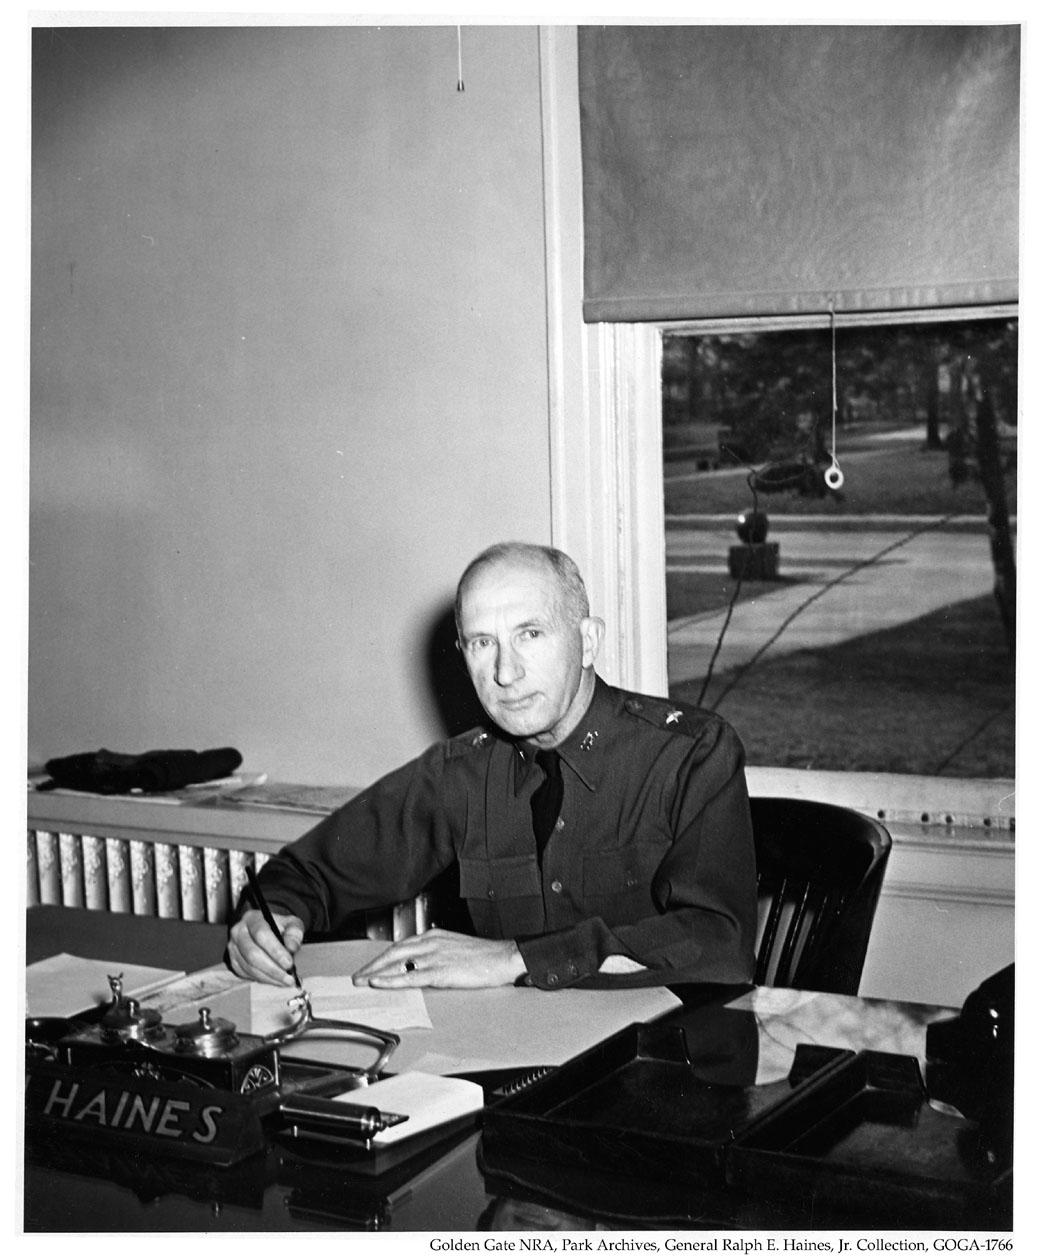 GOGA 35313.132 General Ralph E Haines Collection Photograph of General Haines at Desk on PSF